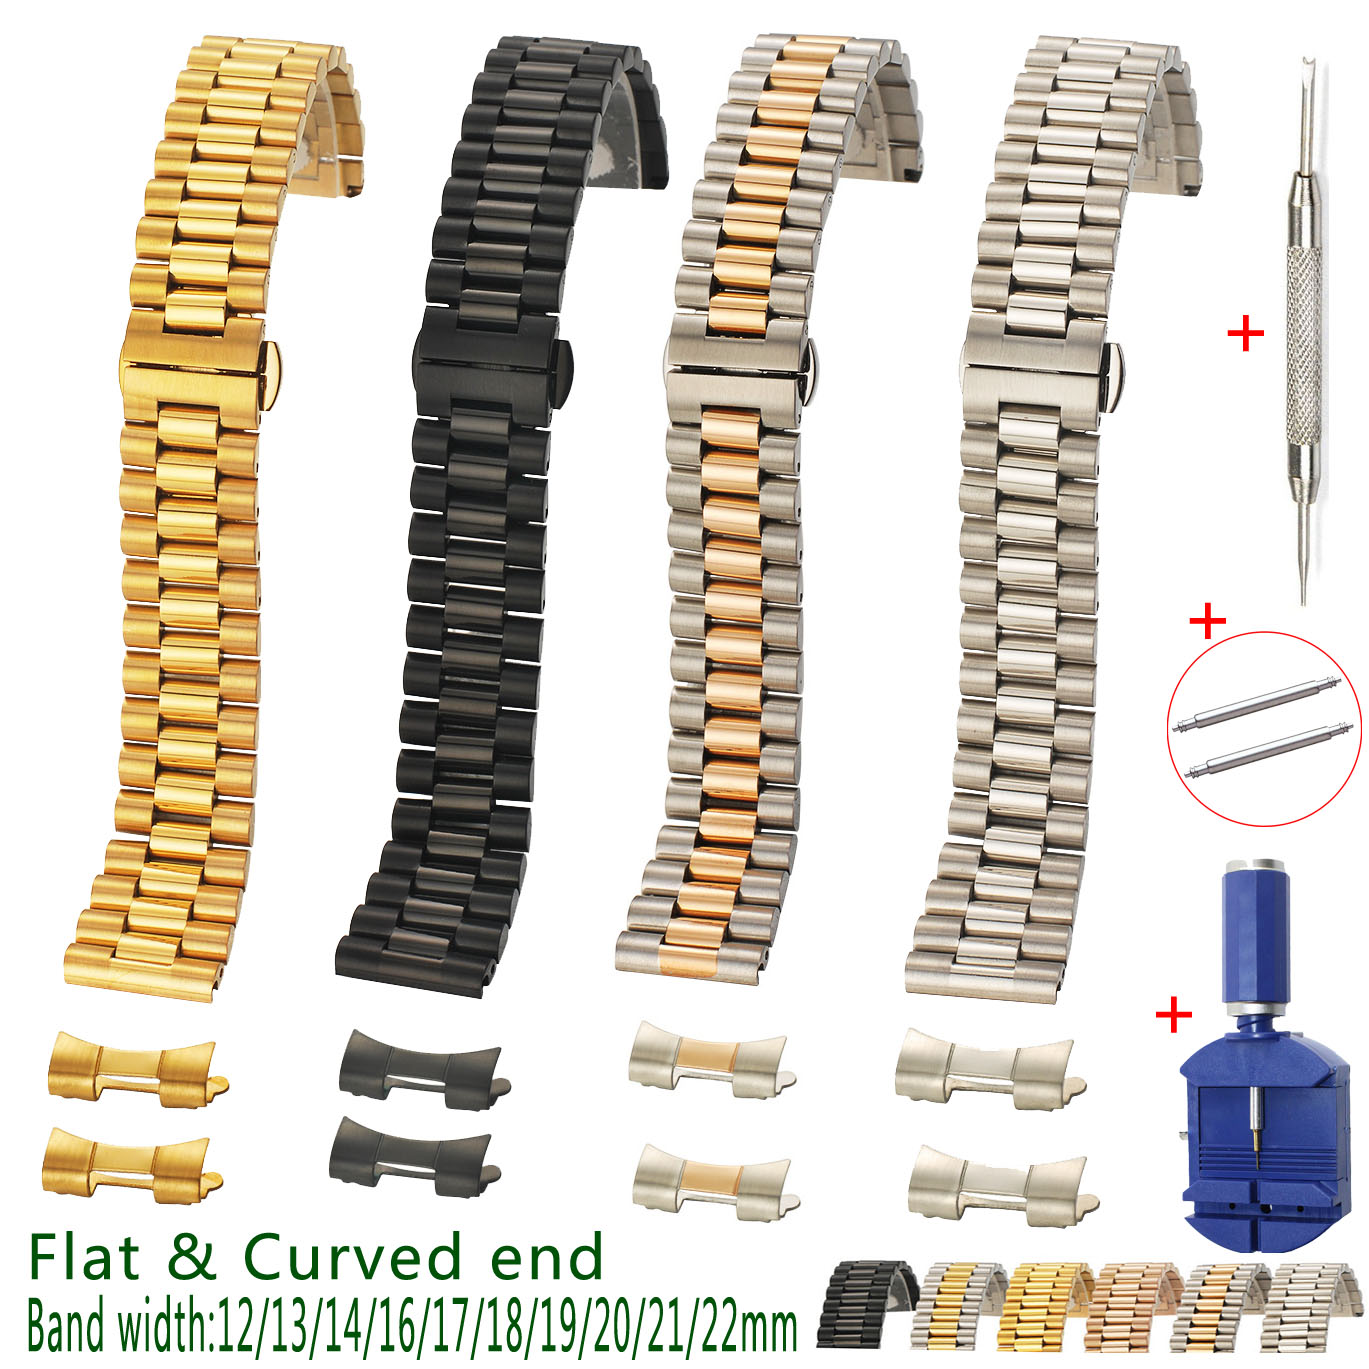 Semicircle Link Solid Stainless Steel Watch Band 12 13 14 16 17 18 19 20 21 22mm Replacement Watch Strap 3Rows Free Curved End